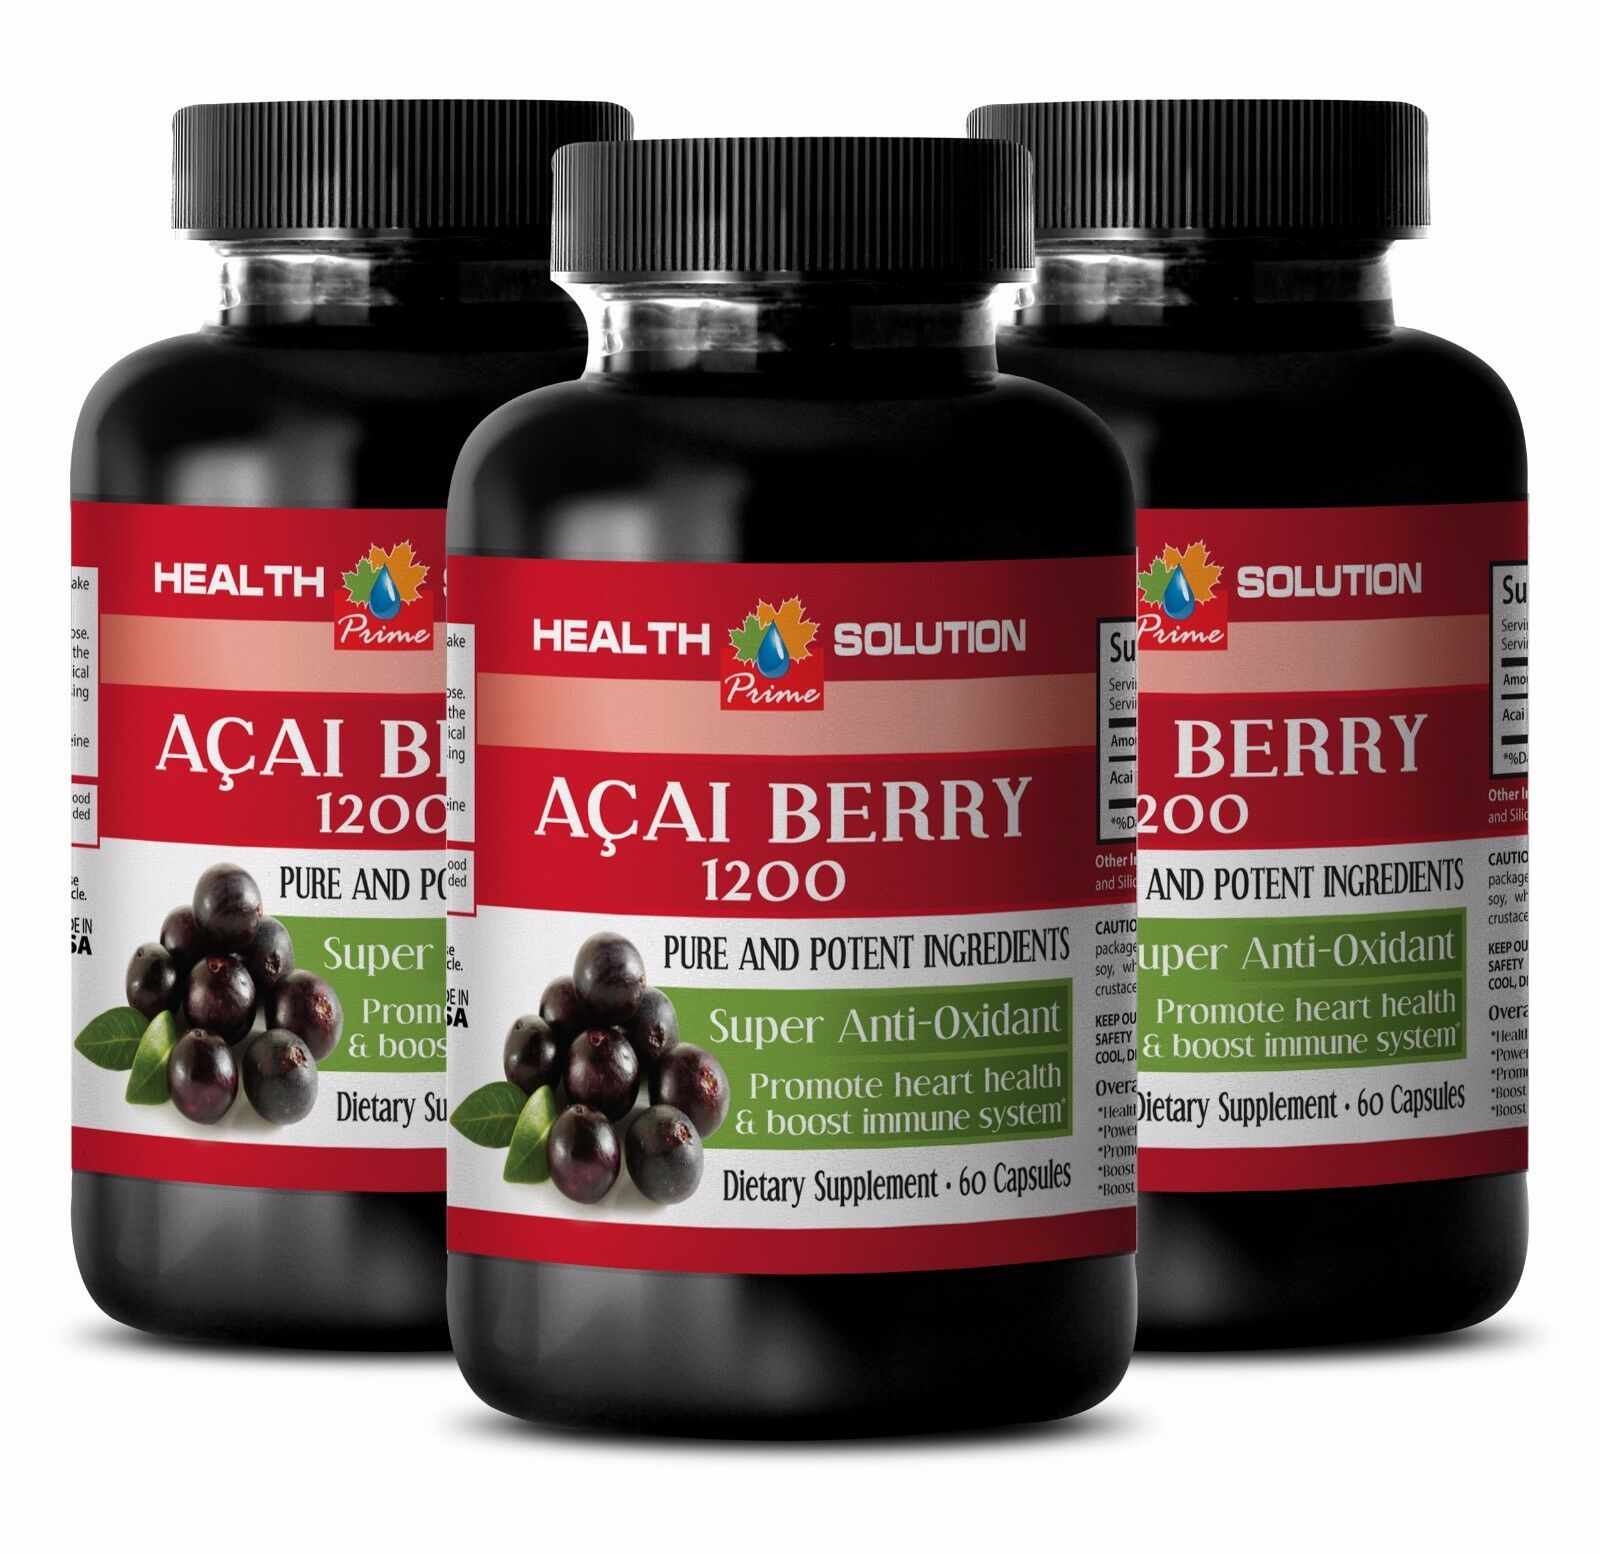 Detox pills - ACAI BERRY 1200 SUPER SUPER 1200 ANTIOXIDANT - Detox powder 6B 431548